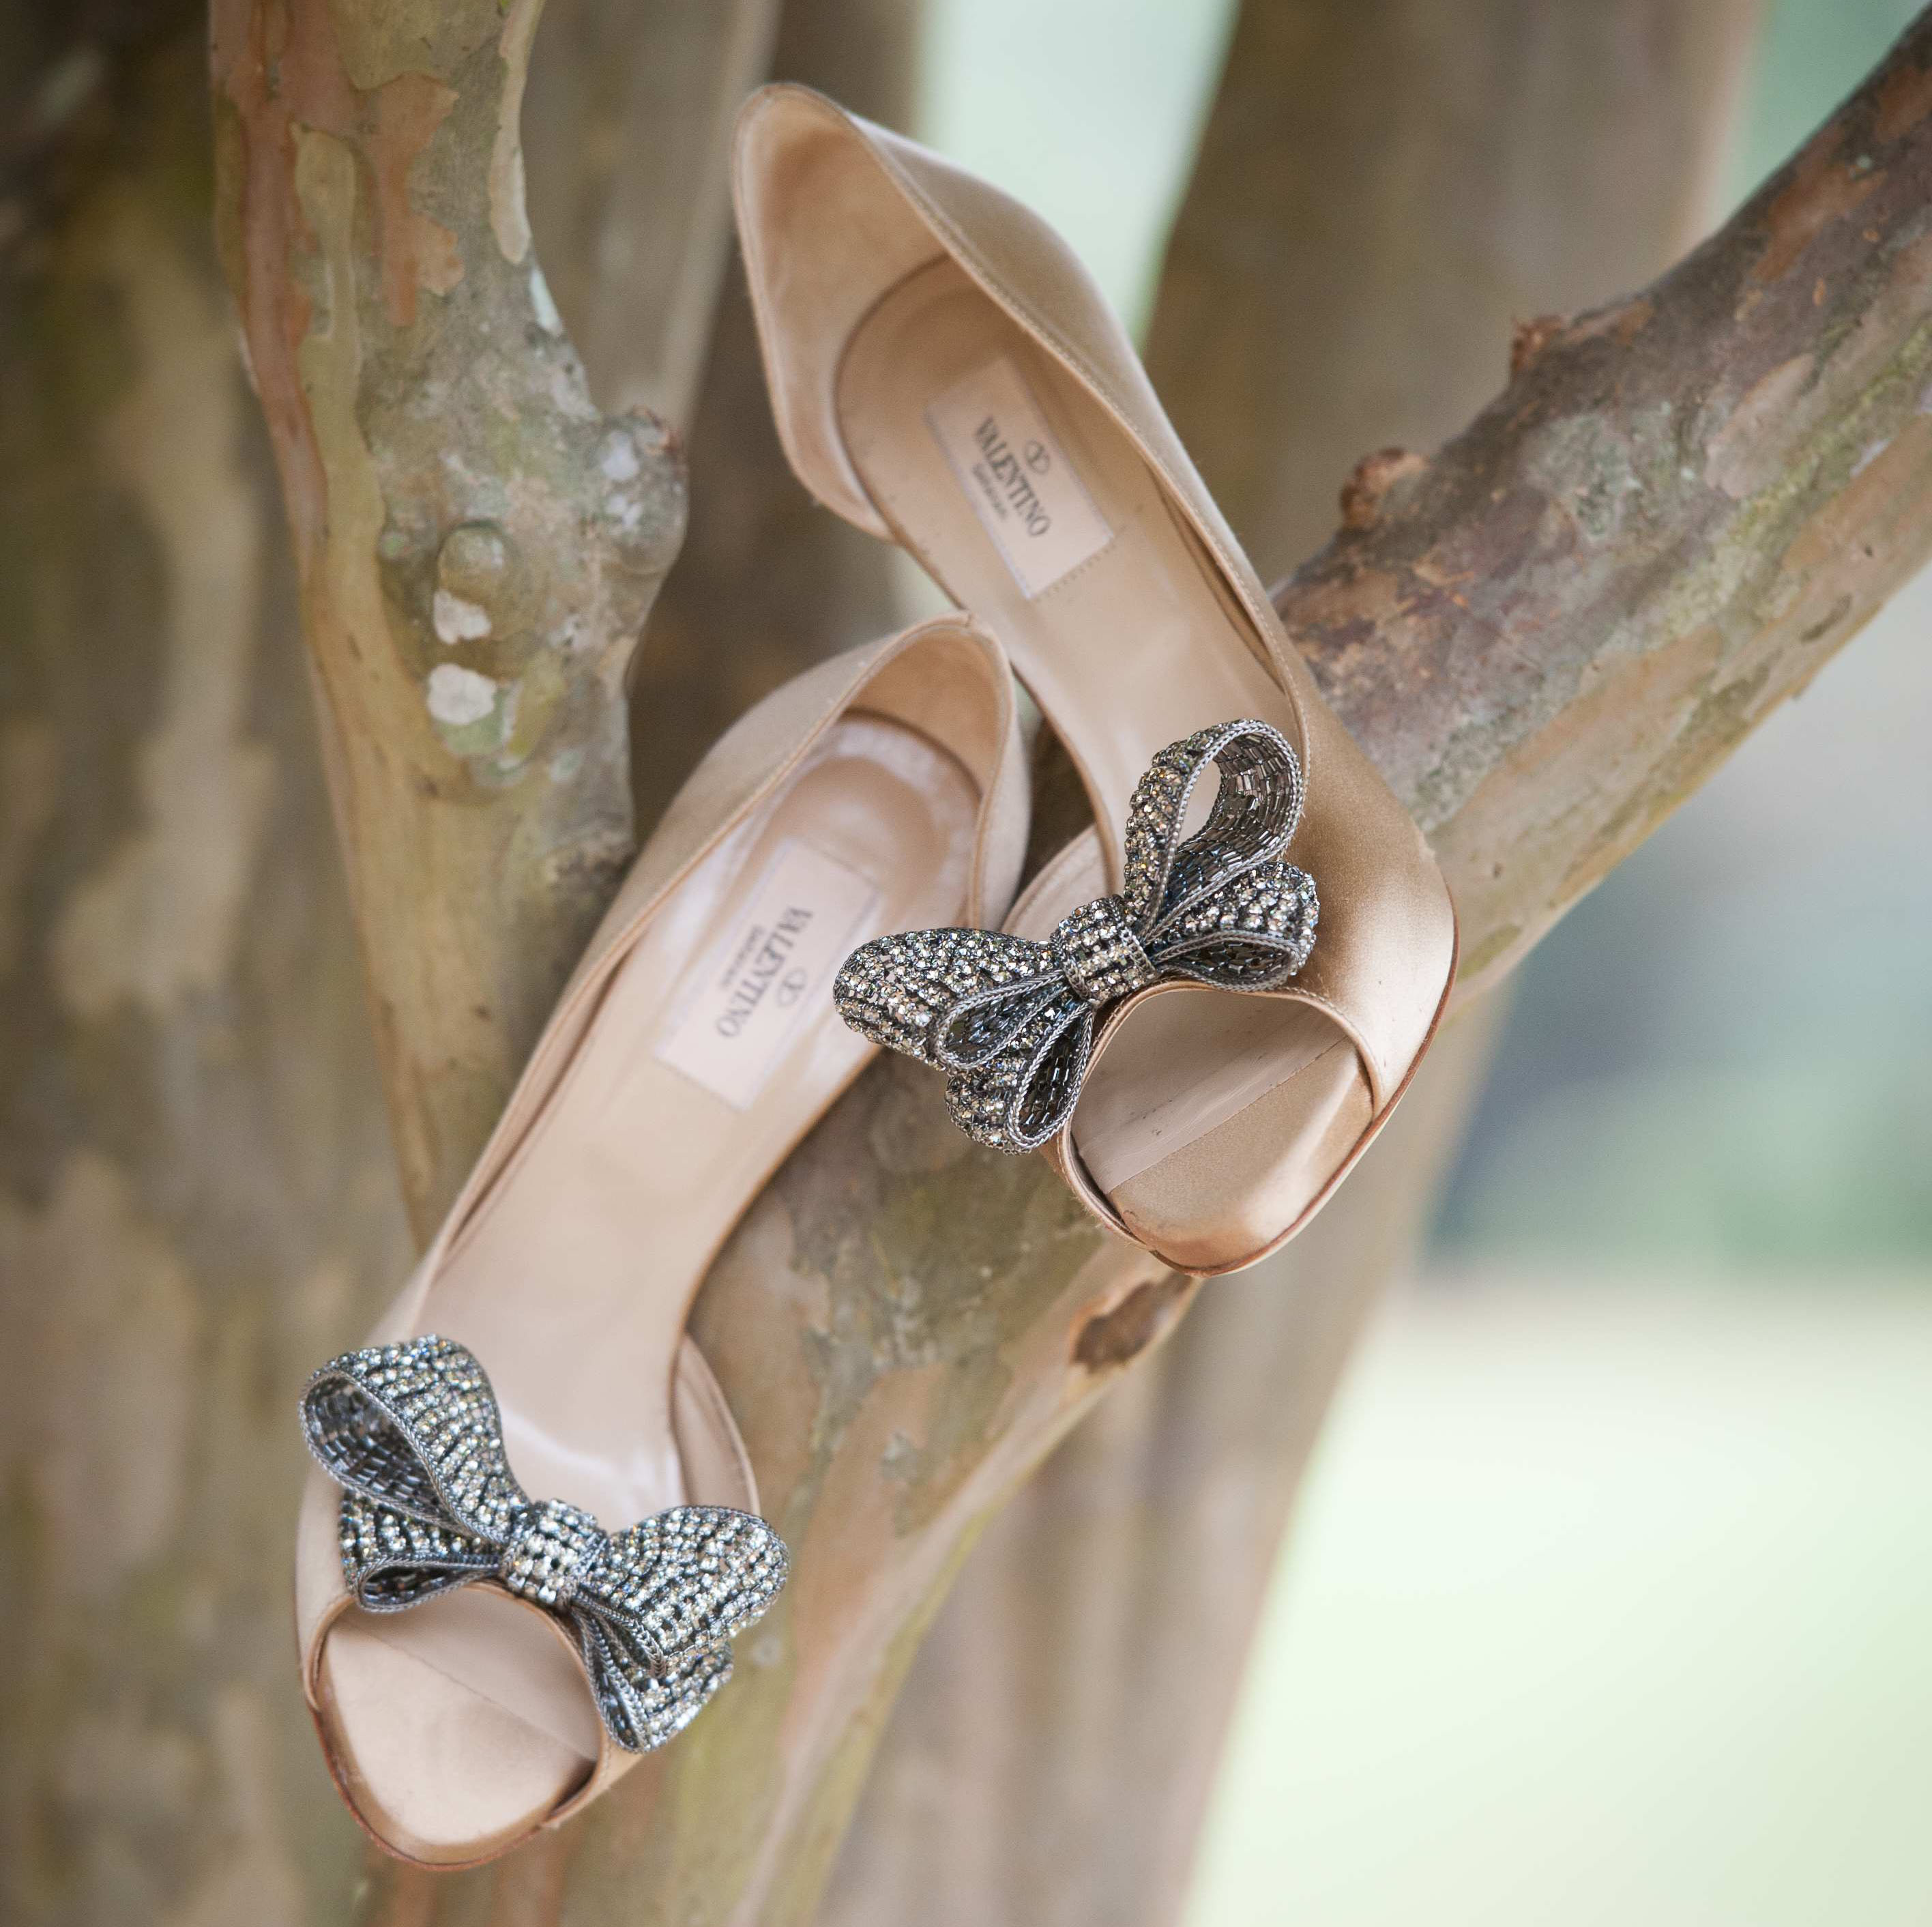 beige nude valentino bridal heels with crystal bows at toe